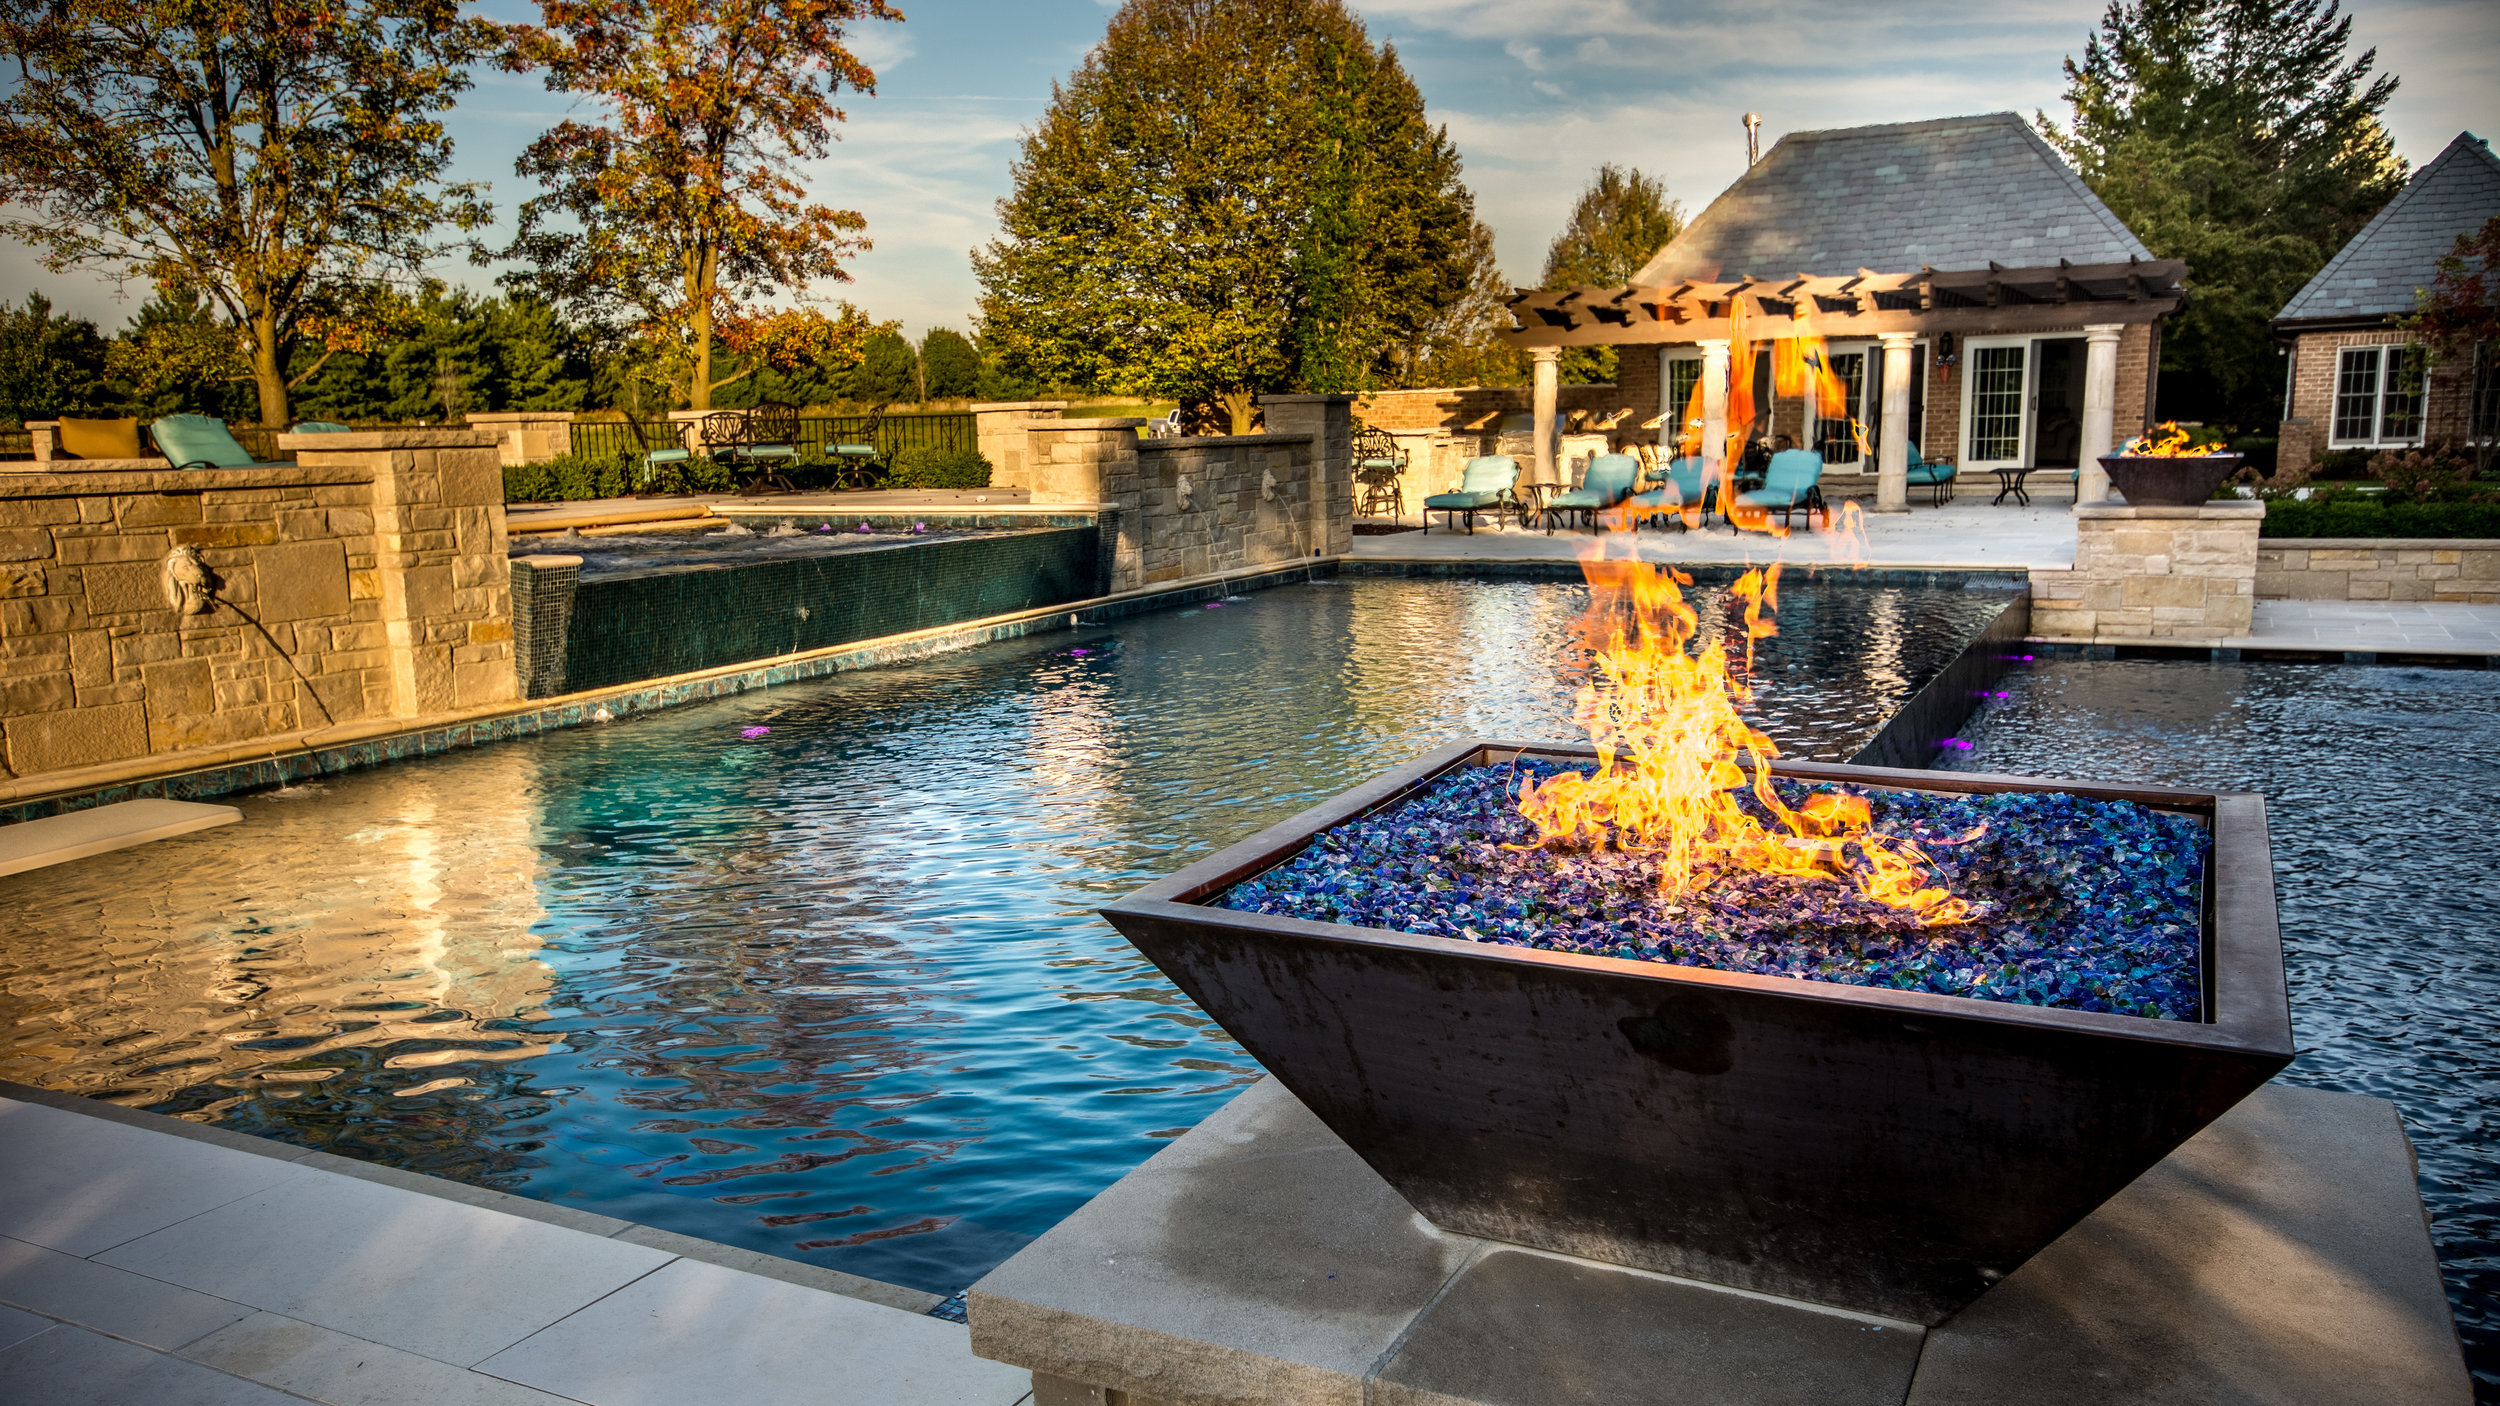 southern-reflection-pools-leisure-pools-contractor-eastbend-north-carolina